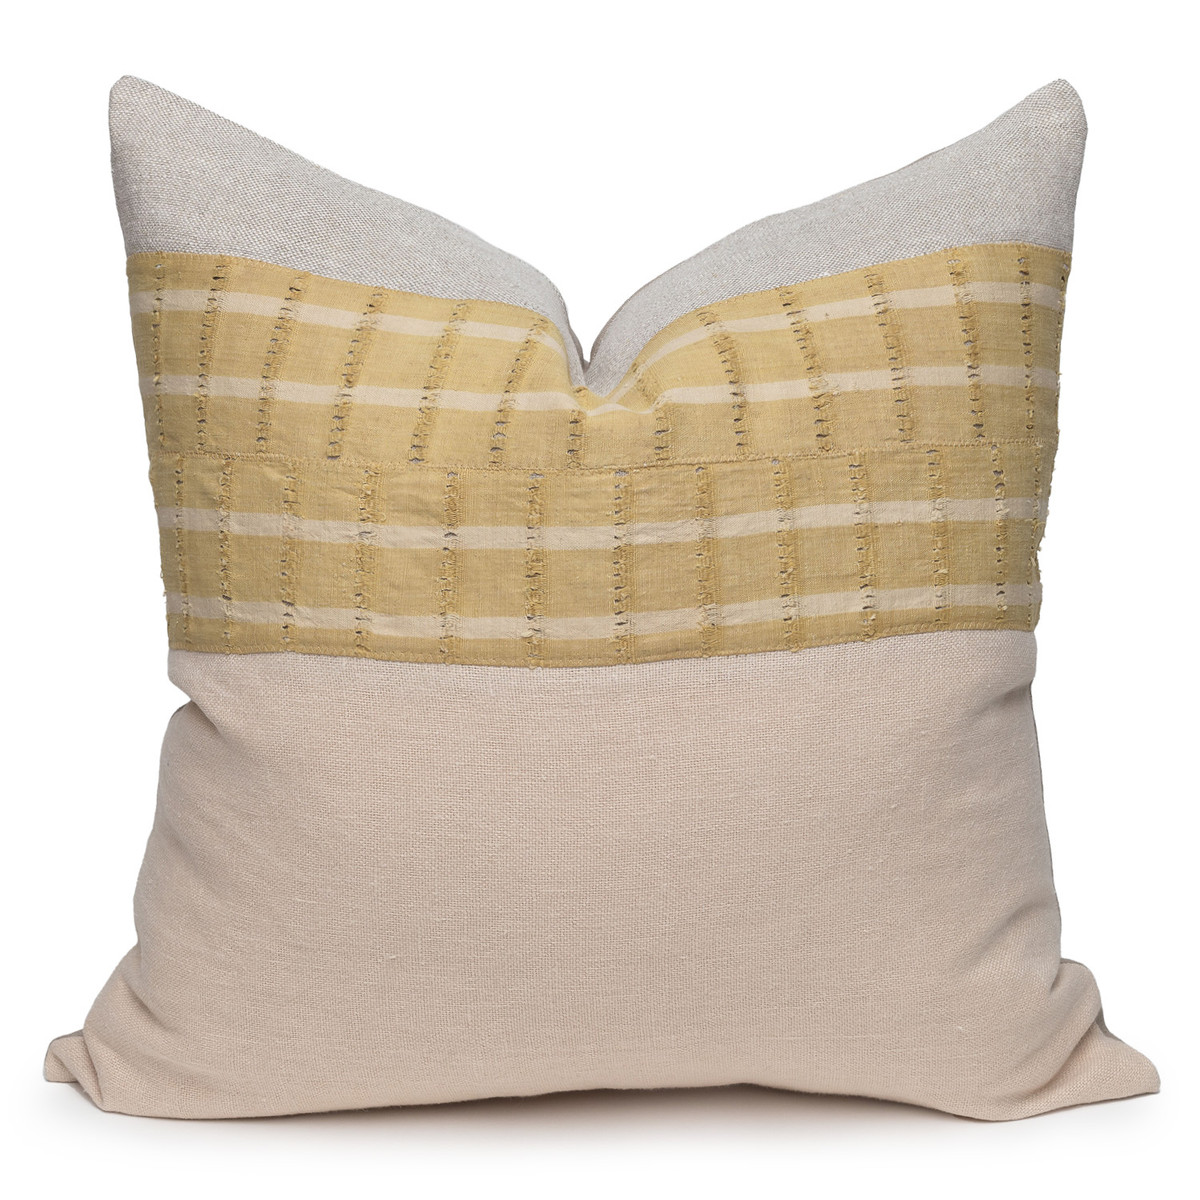 Aria Luxe Vintage Pillow with African Aso Oke Textiles and Linen in Natural & Creme Brulee-22- Front View